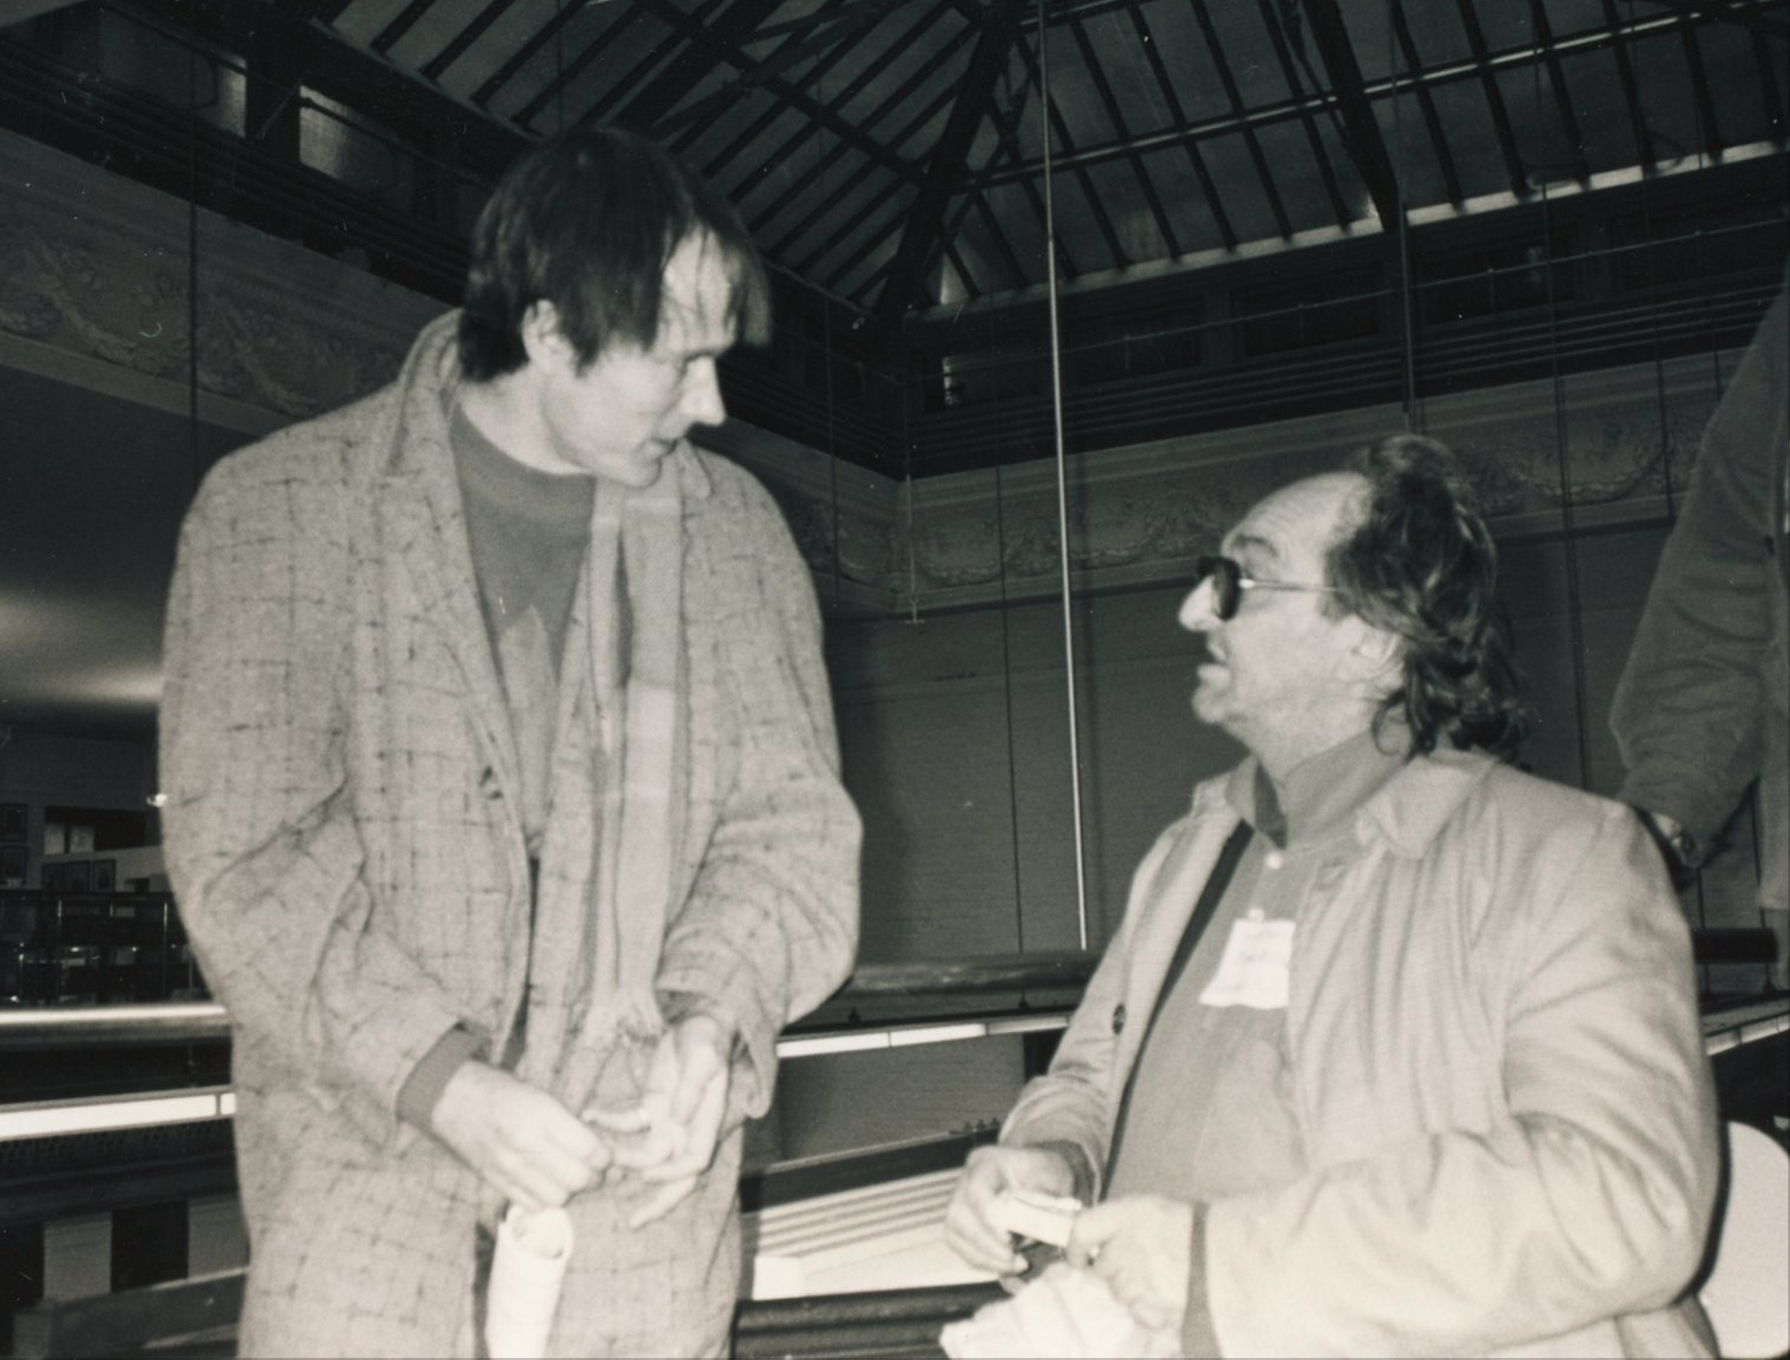 Simon Pettet with John Wieners – photo by Allen Ginsberg